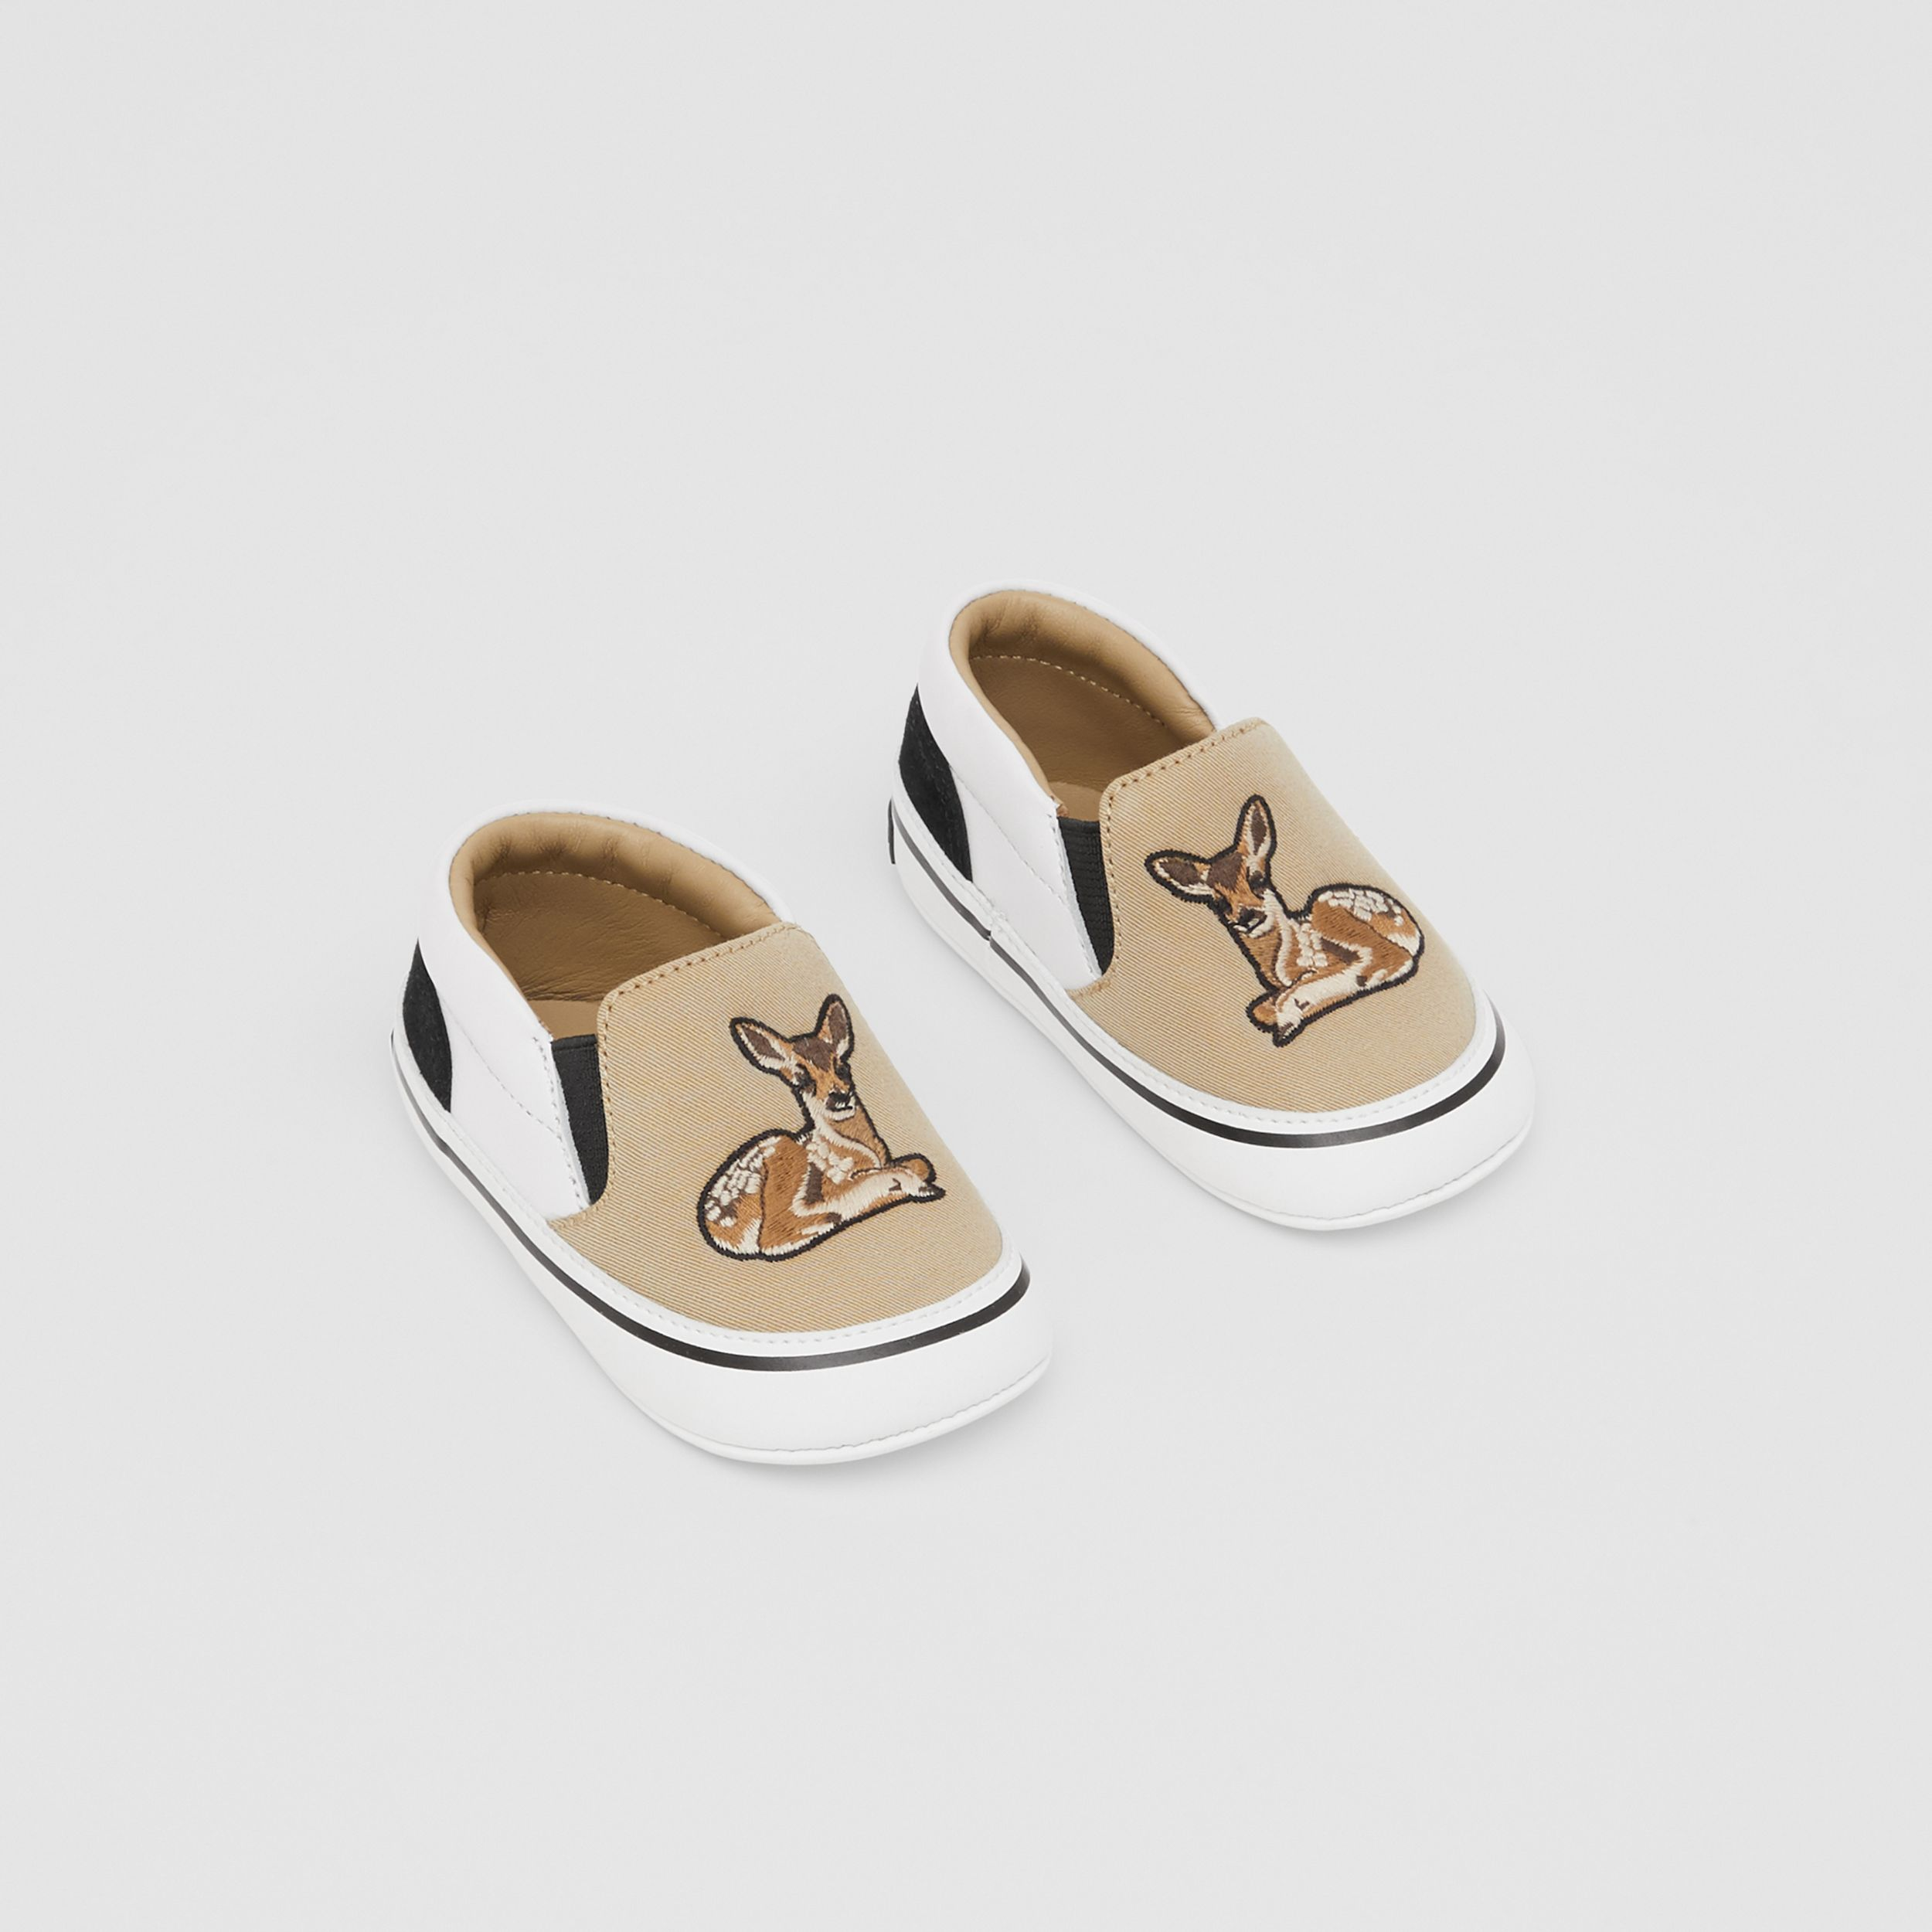 Deer Motif Slip-on Shoes in Honey - Children | Burberry - 1